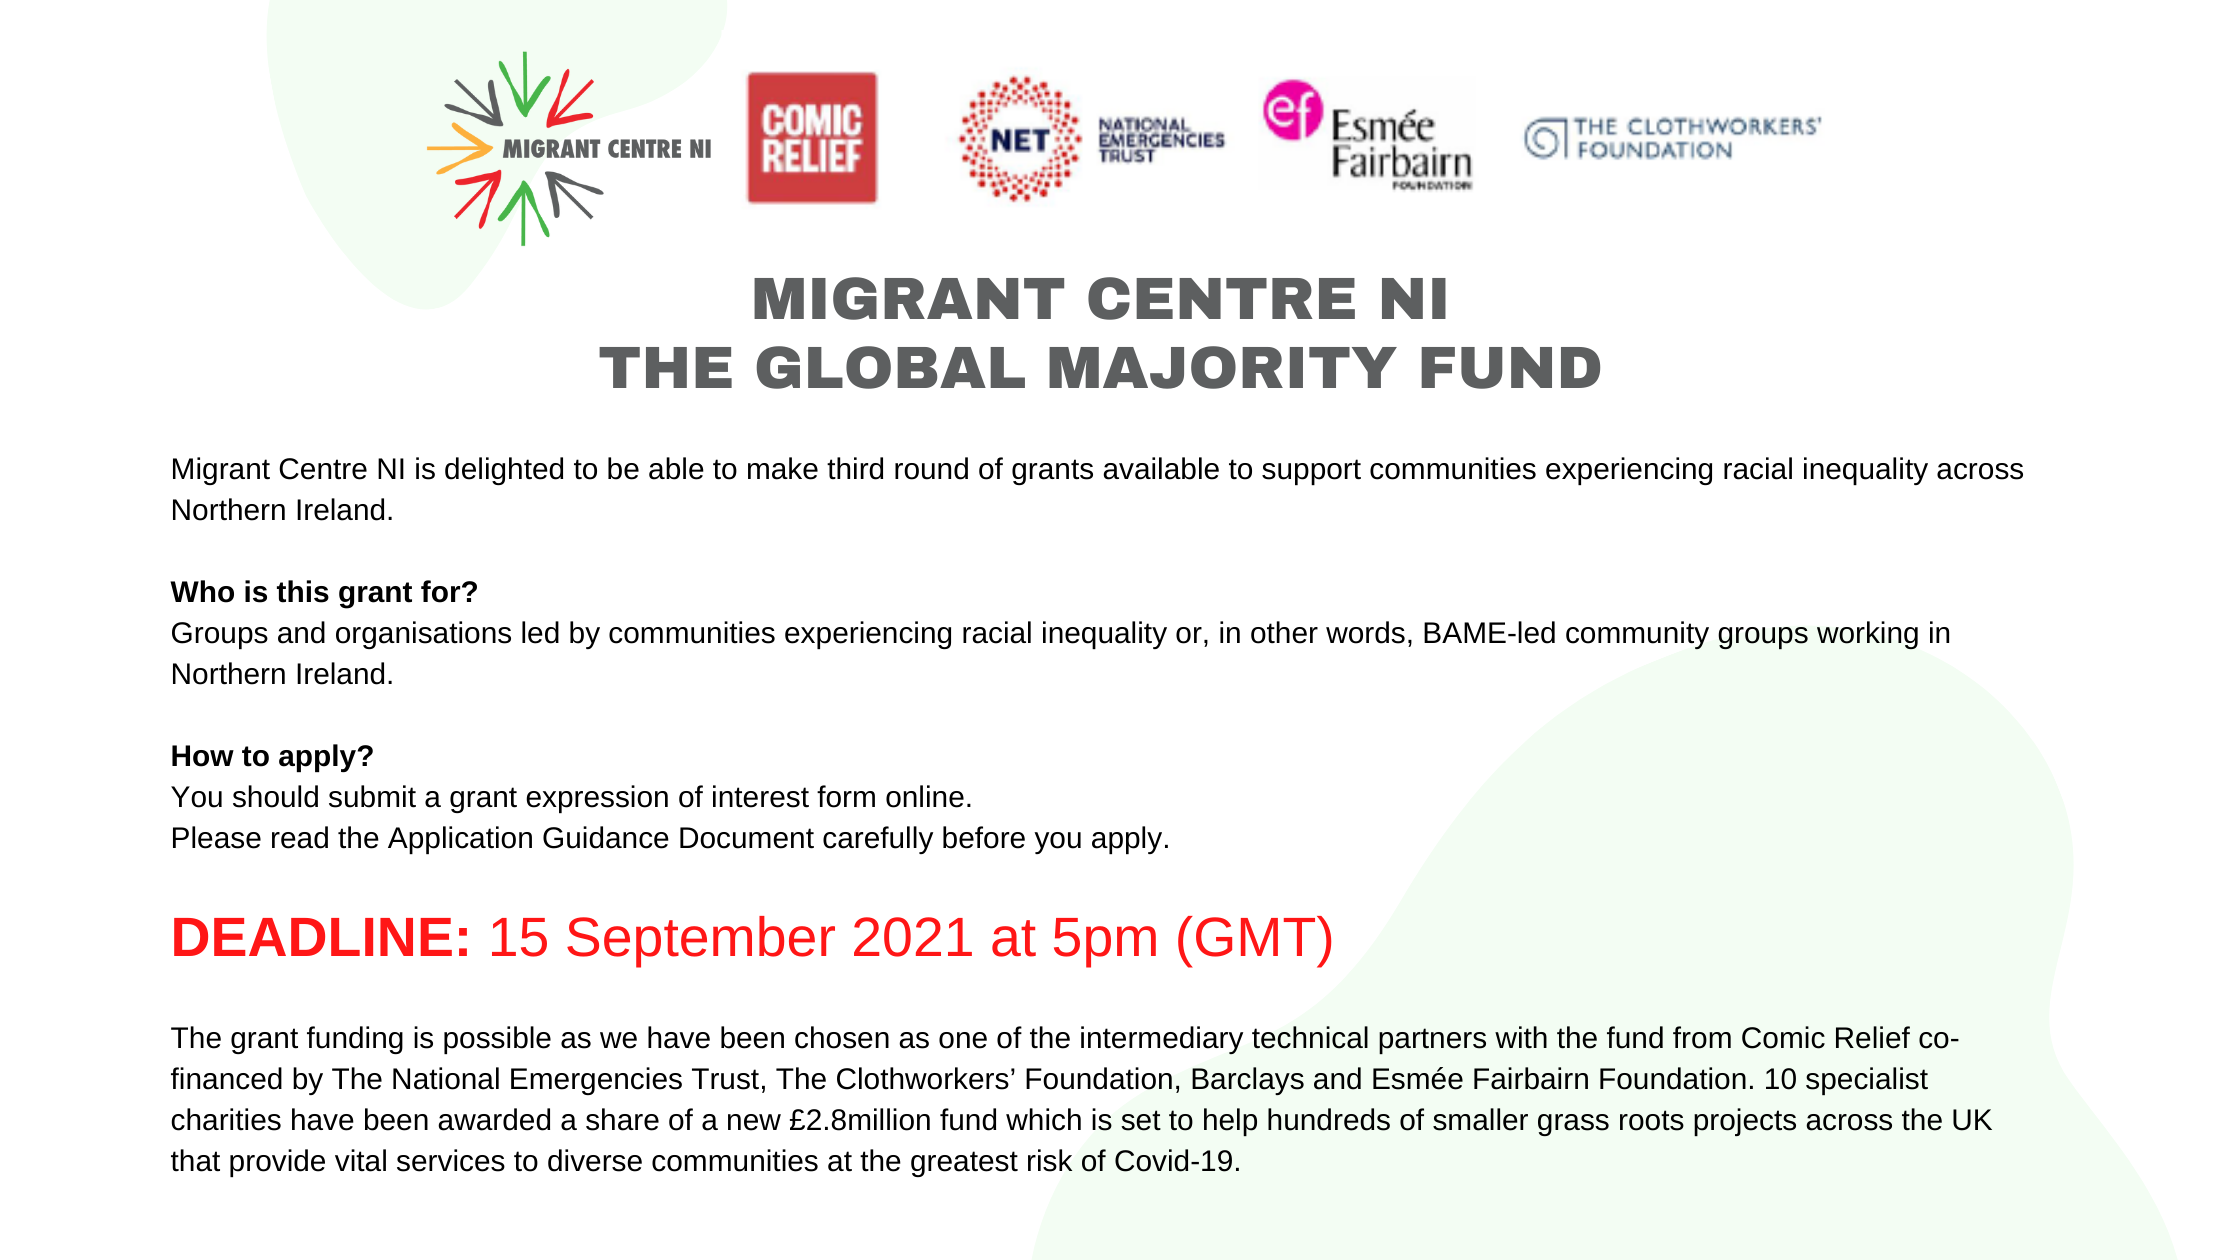 The Global Majority Fund opens